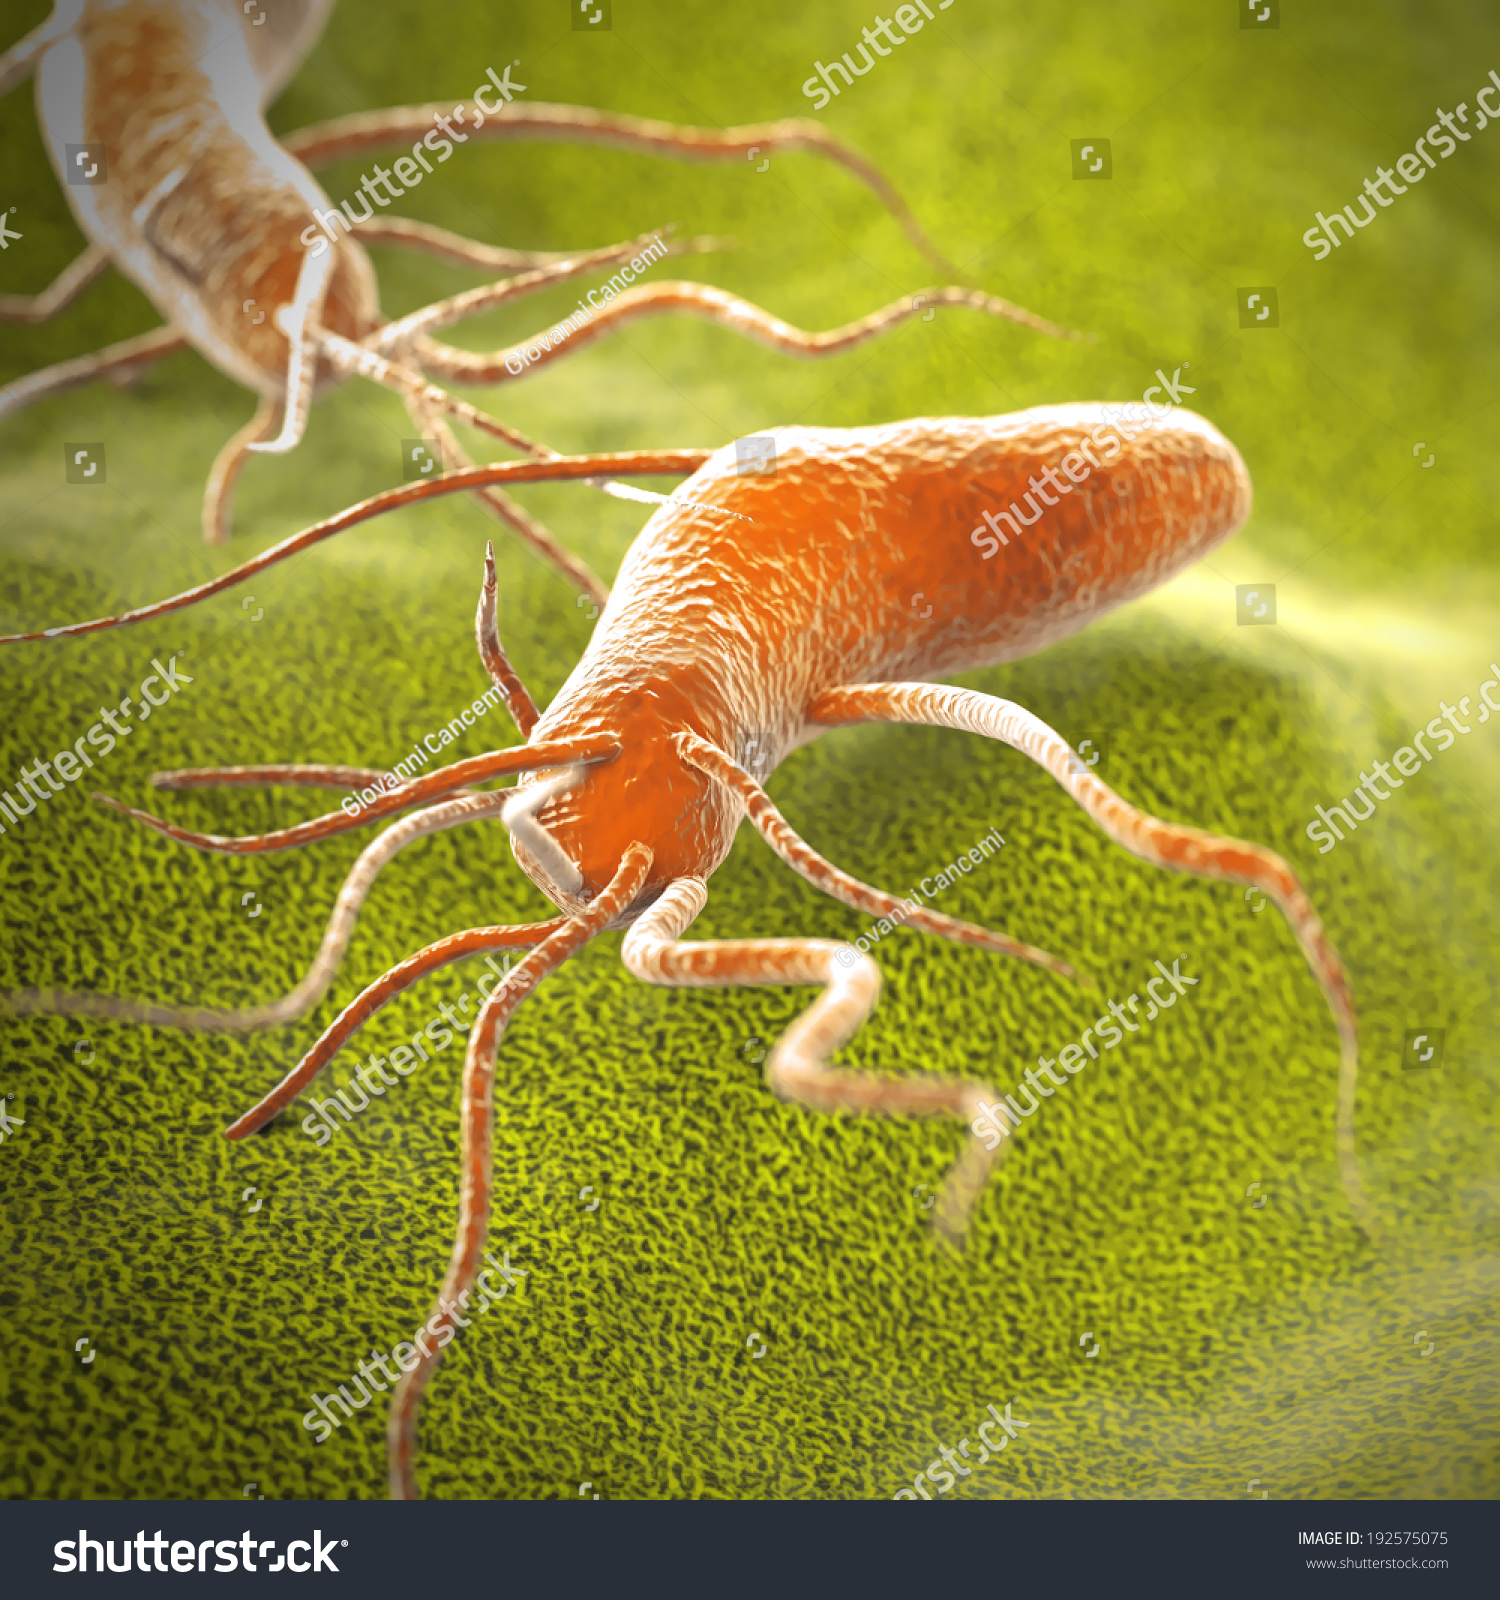 Top Salmonella Cell Intestinal Images For Pinterest Tattoos